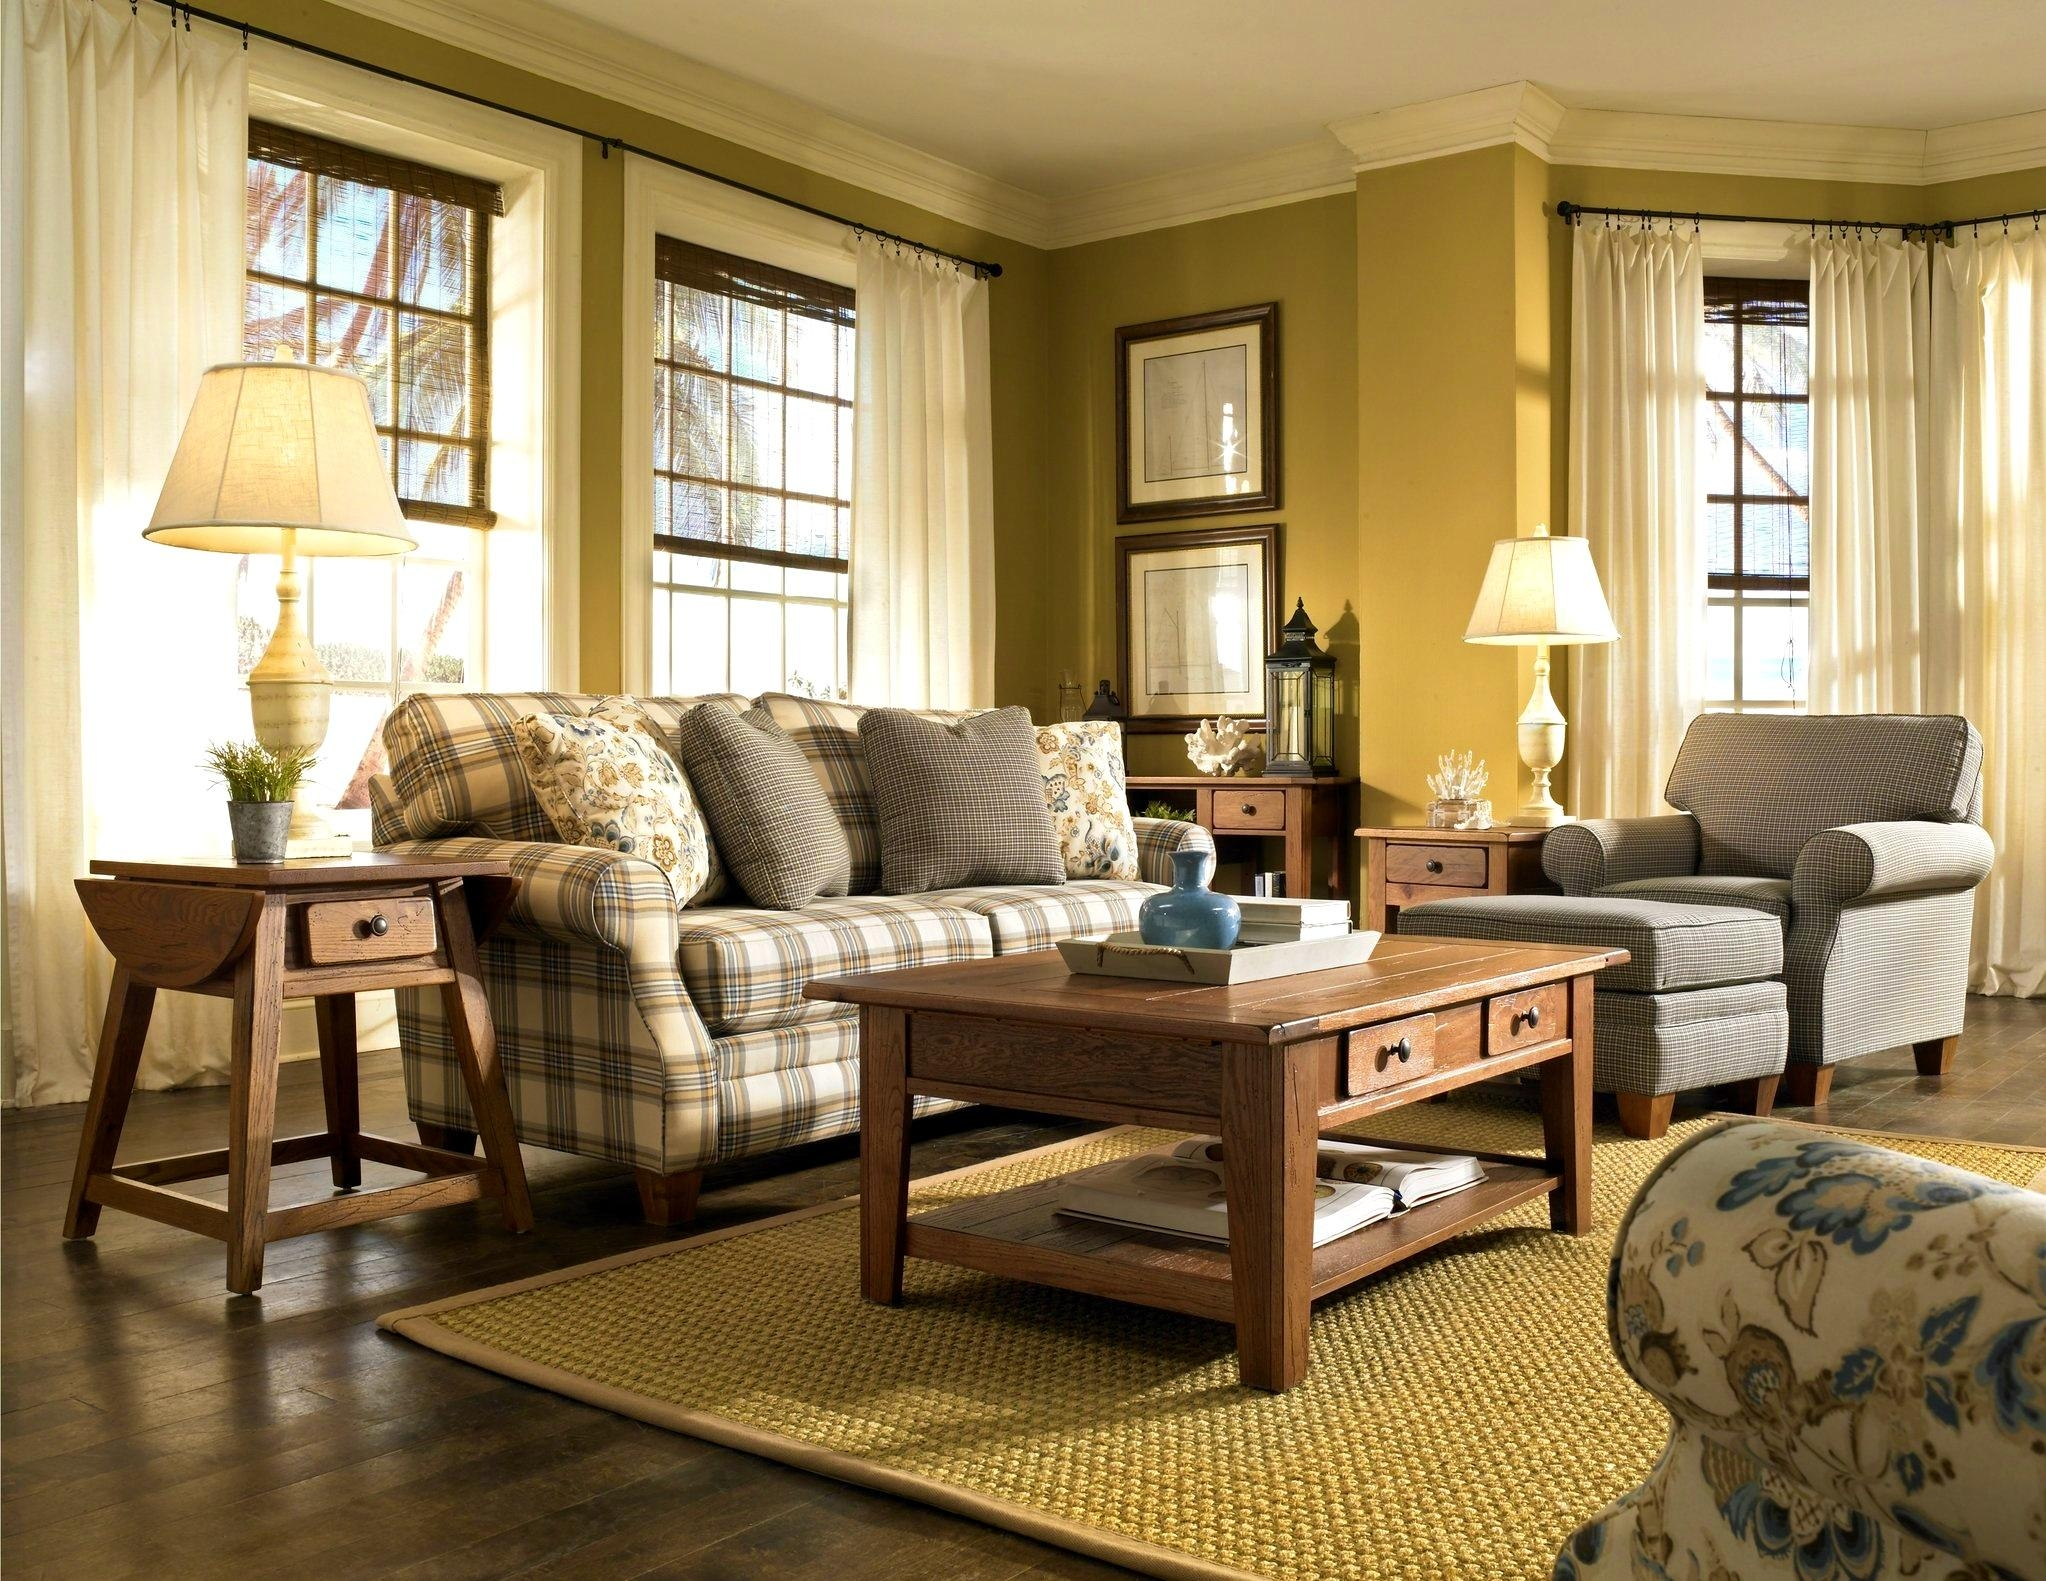 Sofas Center : Country Style Sofas And Loveseats Plaid Or Couches Inside Country Style Sofas And Loveseats (View 5 of 20)